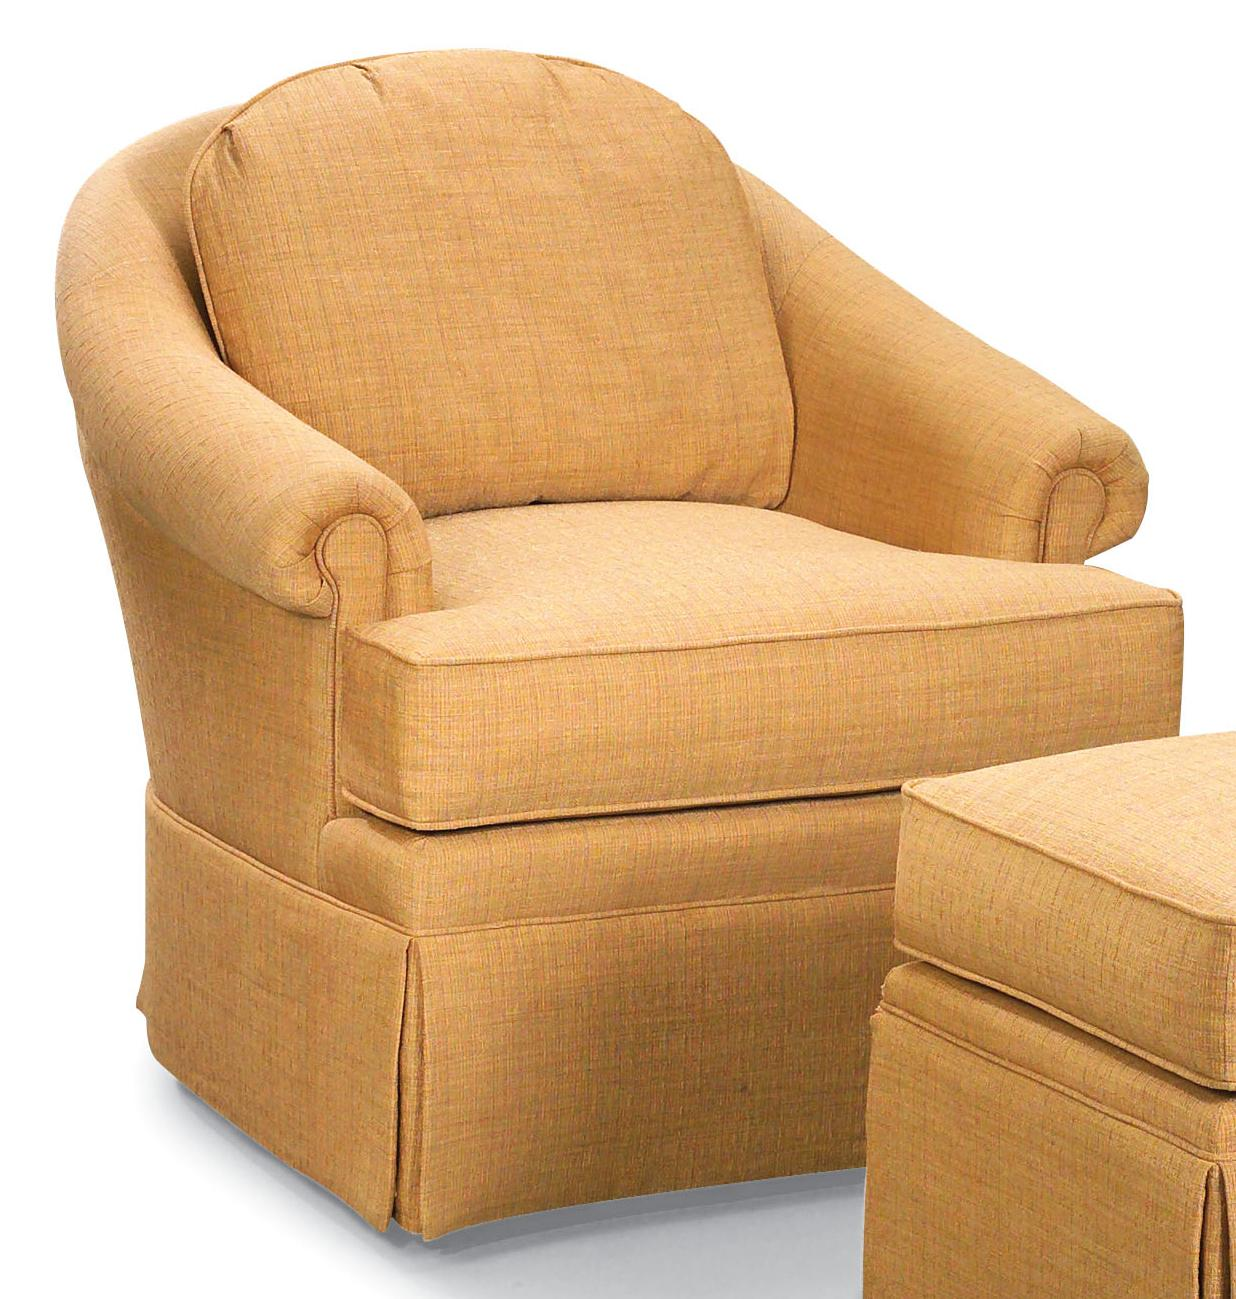 Swivel accent chair swivel accent chair design and ideas for Swivel accent chairs with arms